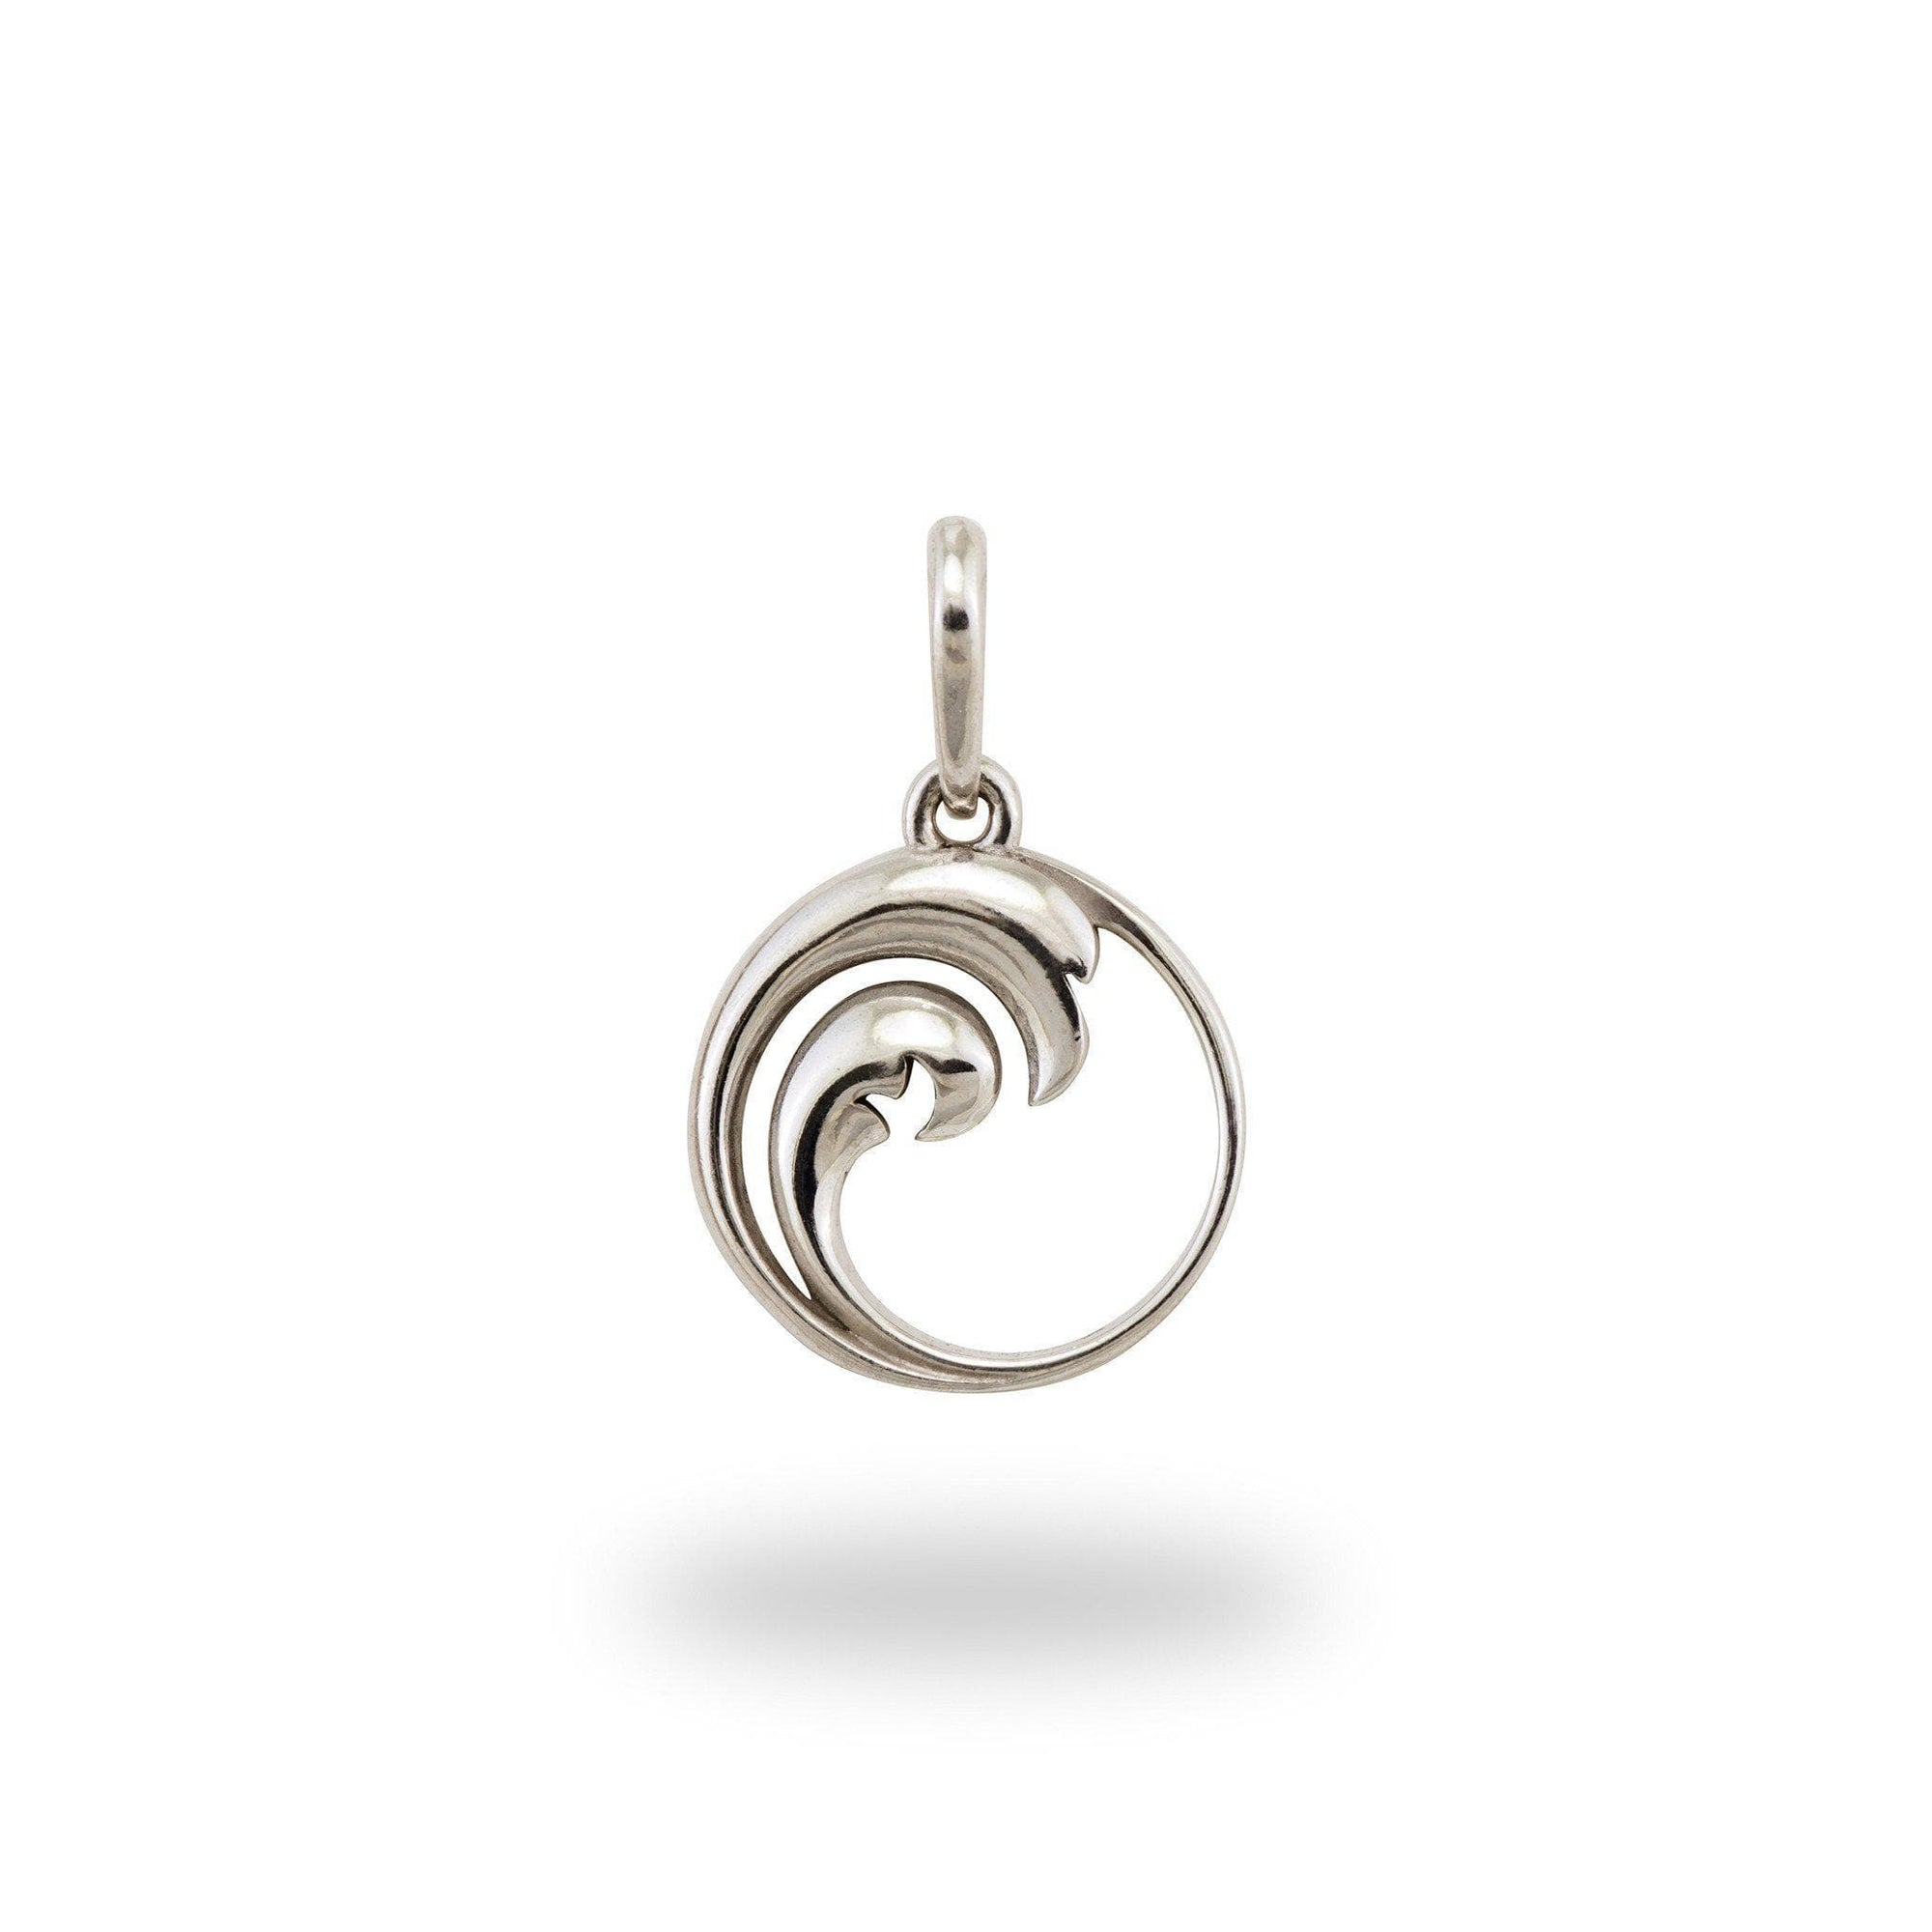 Nalu Pendant in Sterling Silver - 12mm-[SKU]